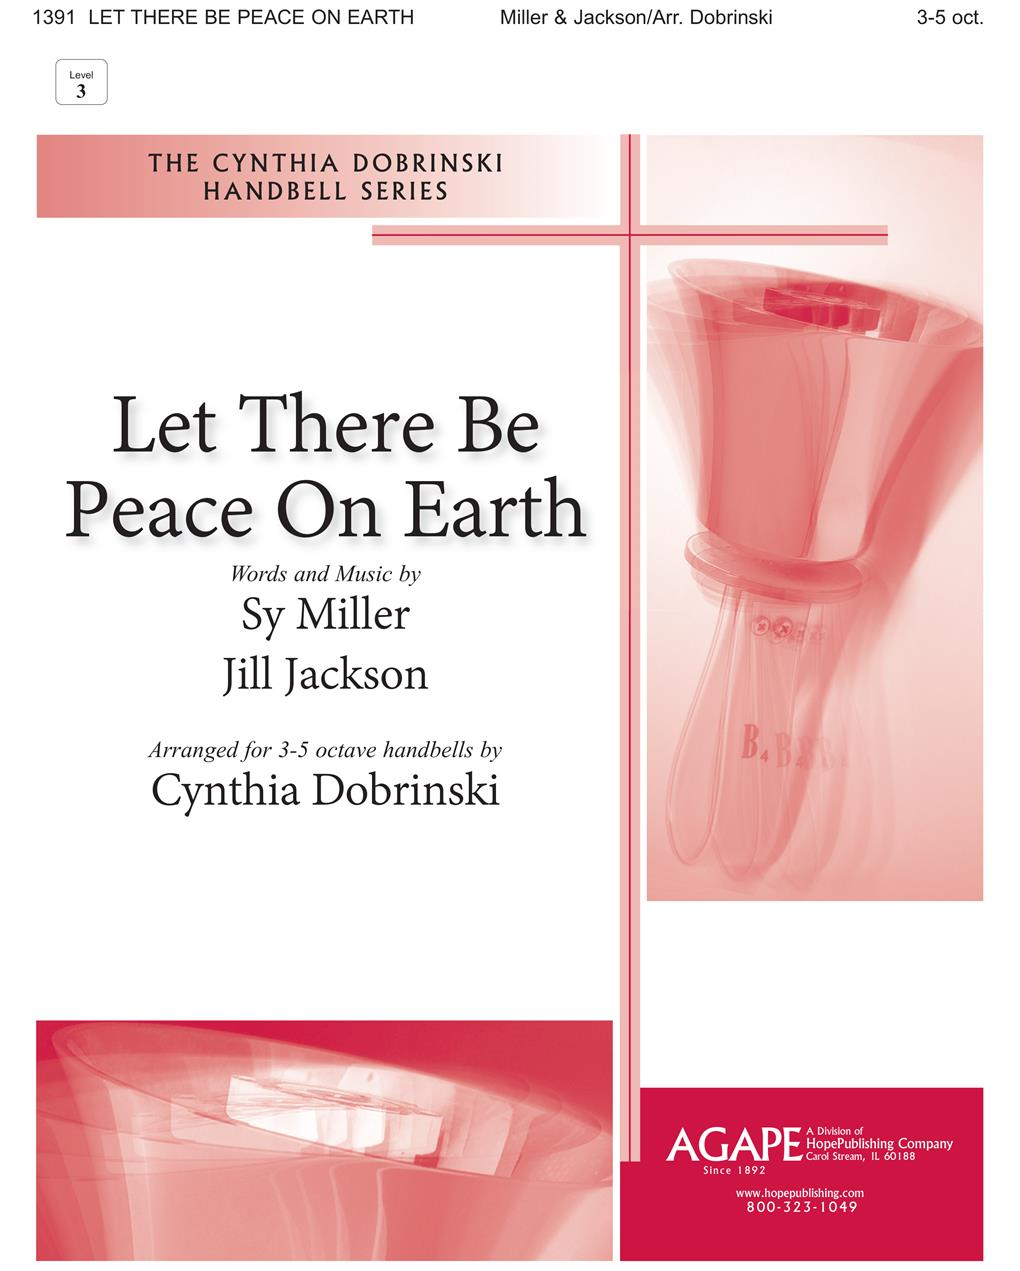 Let There Be Peace on Earth - 3-5 Octave Cover Image